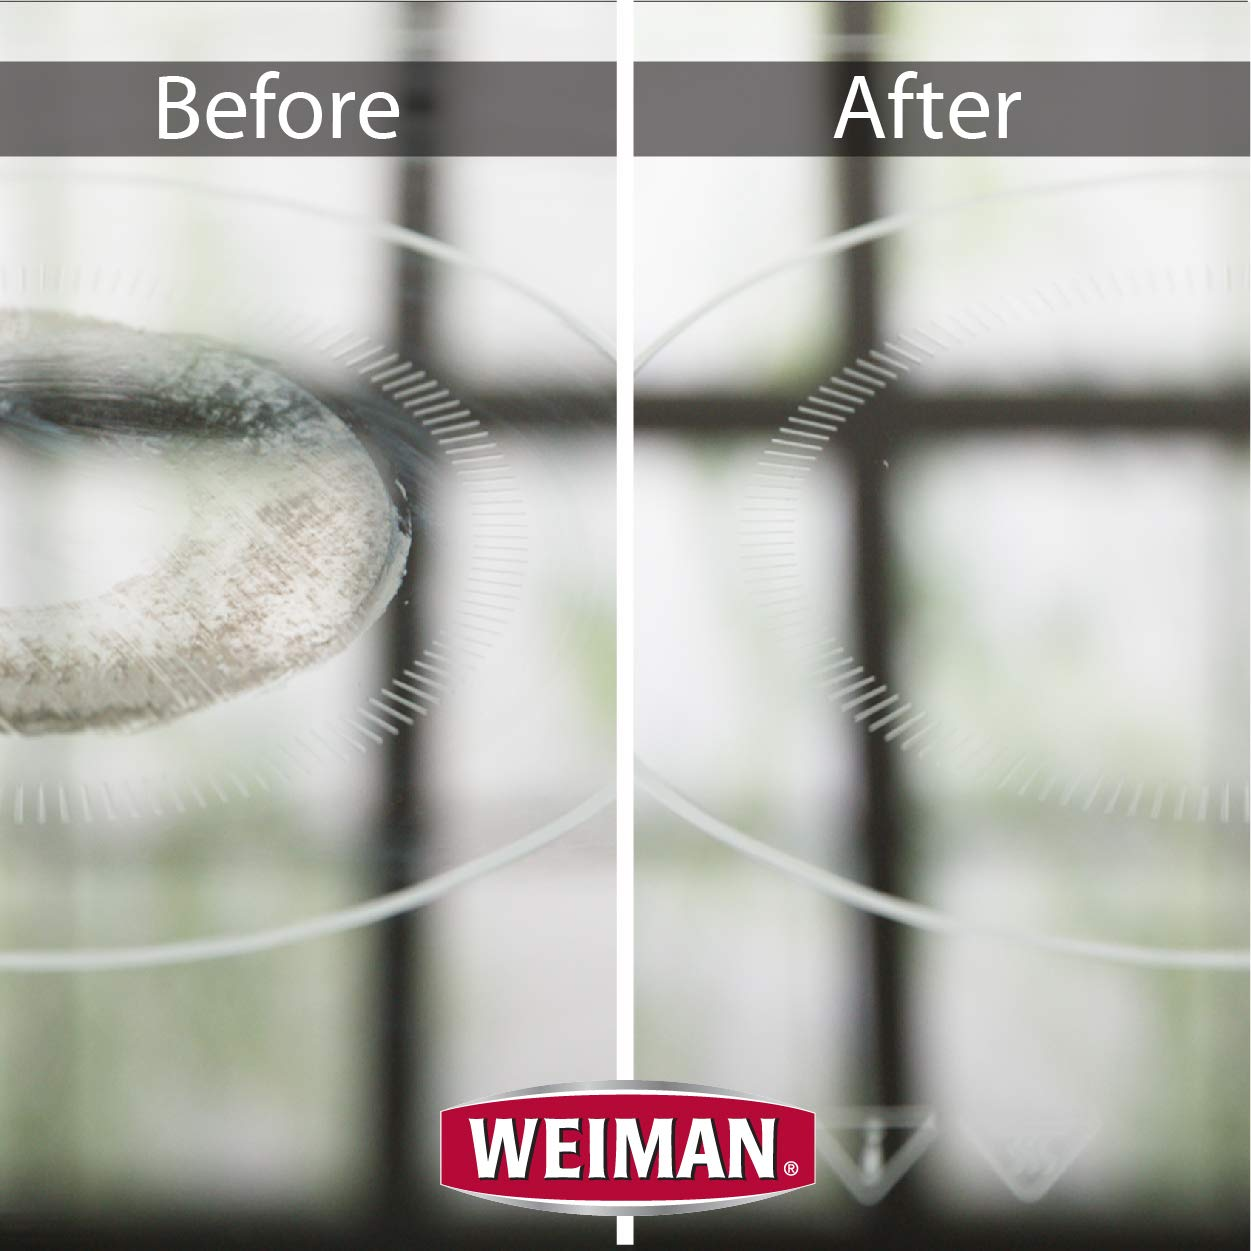 Weiman Glass Cook Top Cleaner and Polish - 20 Ounce [2 Pack] Heavy Duty No Scratch Glass Ceramic Safe Non-Abrasive Stovetop Cooktop Cleaner by Weiman (Image #4)